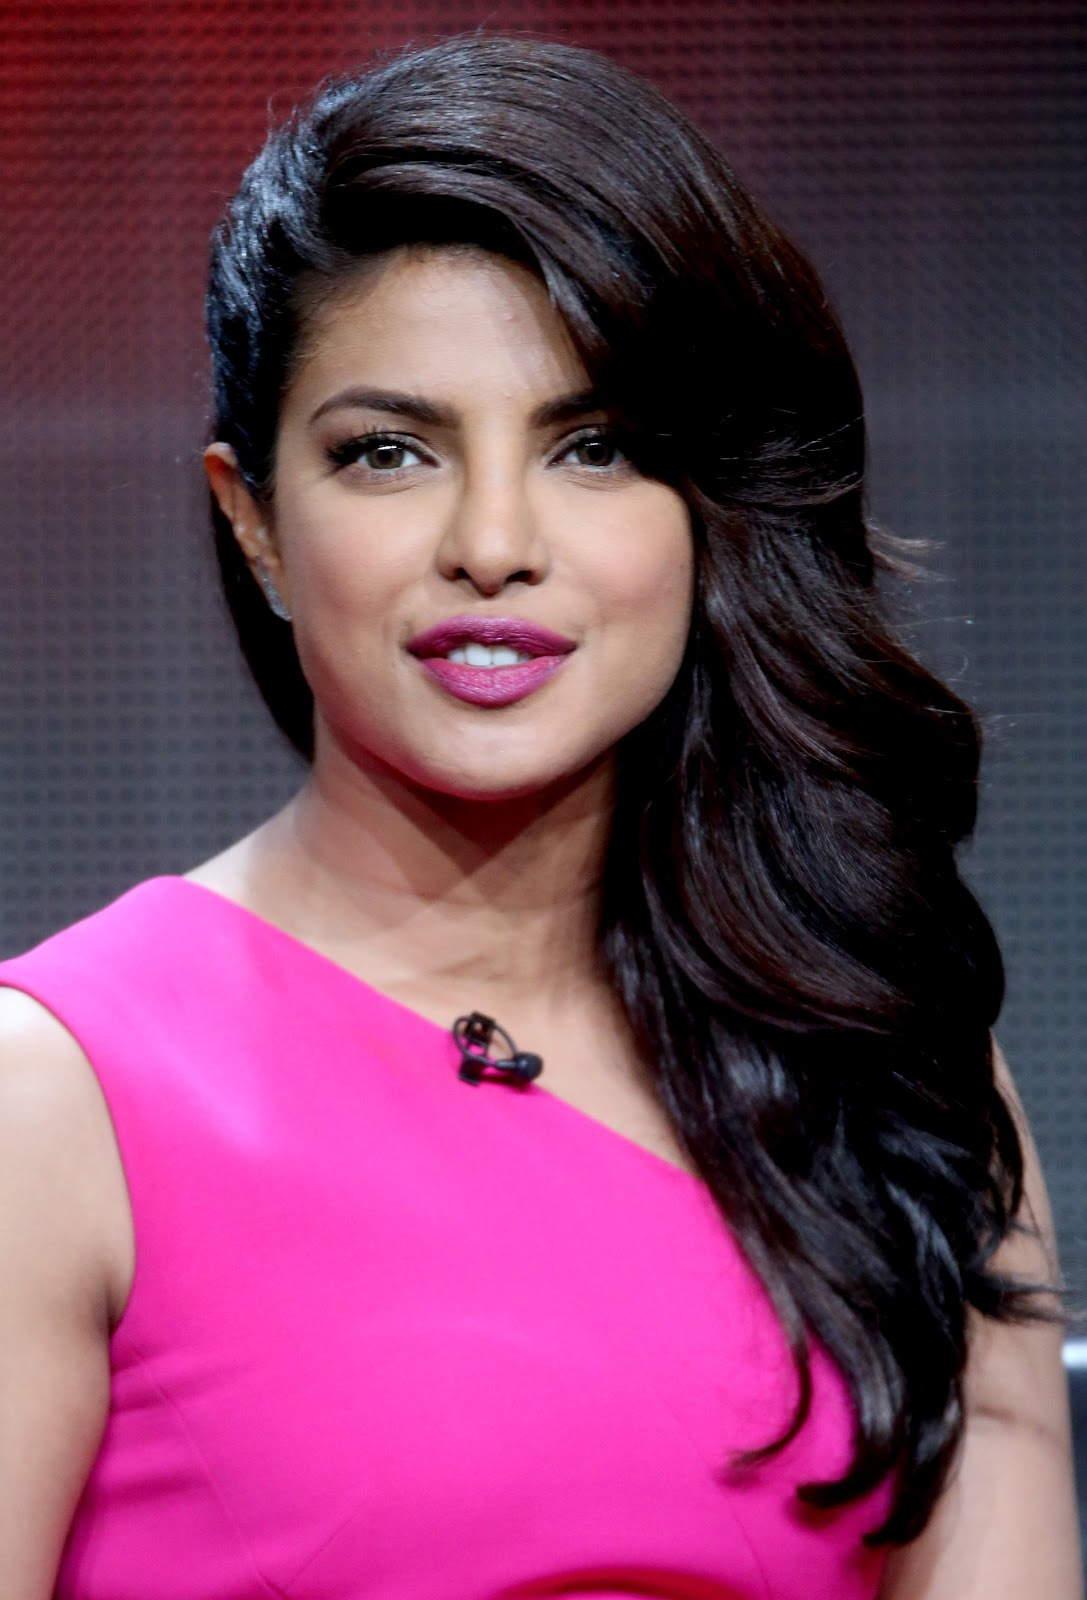 Priyanka Chopra on stage during the 'Quantico' panel discussion